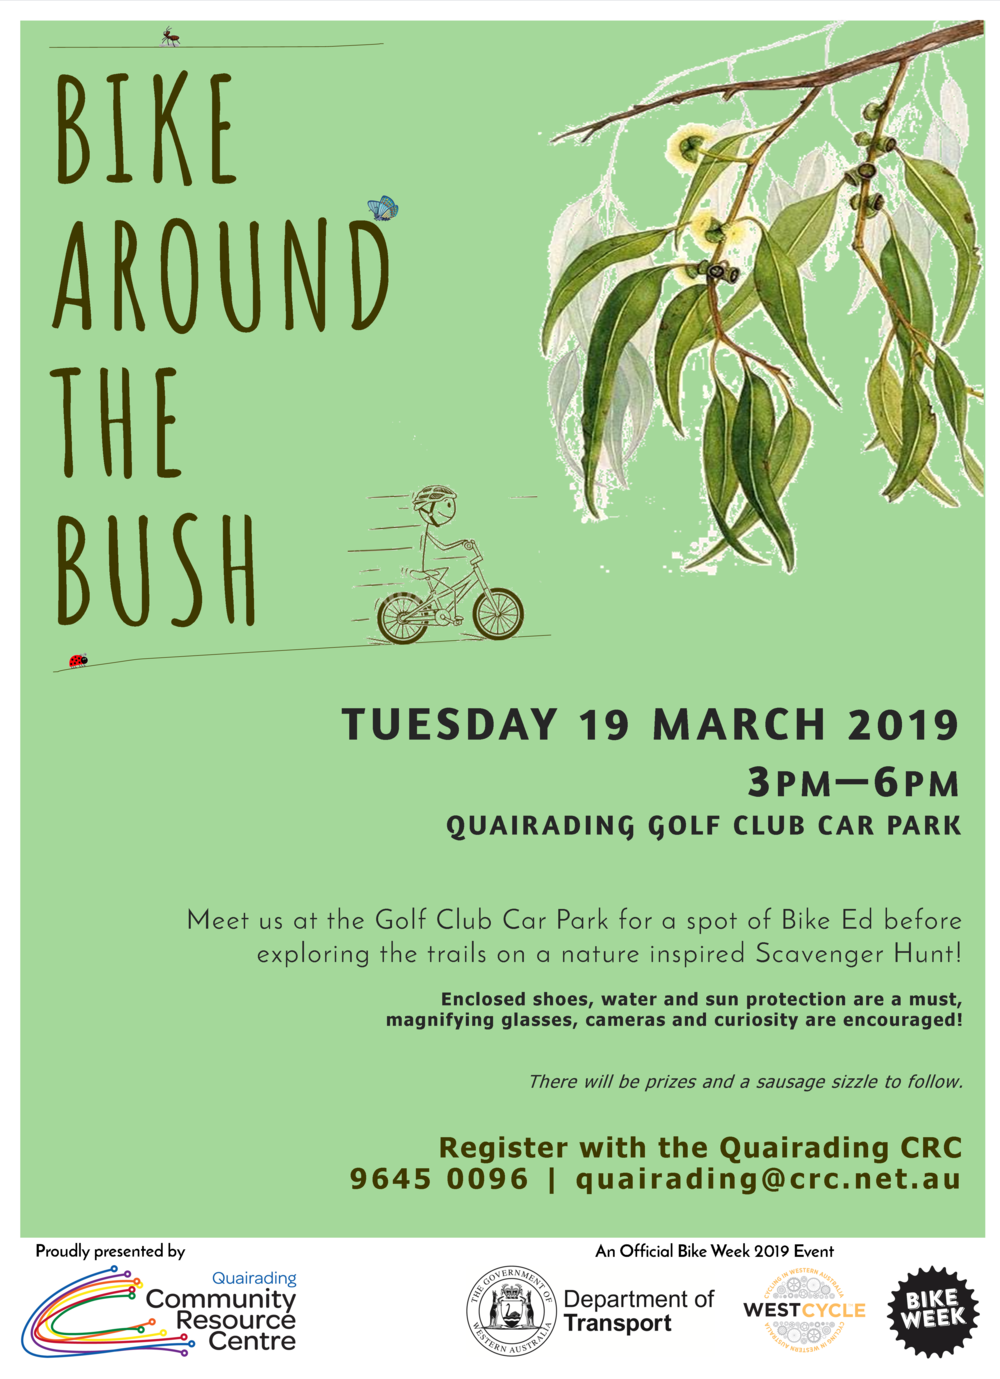 Quaraiding CRC  Bike Around The Bush Poster.png